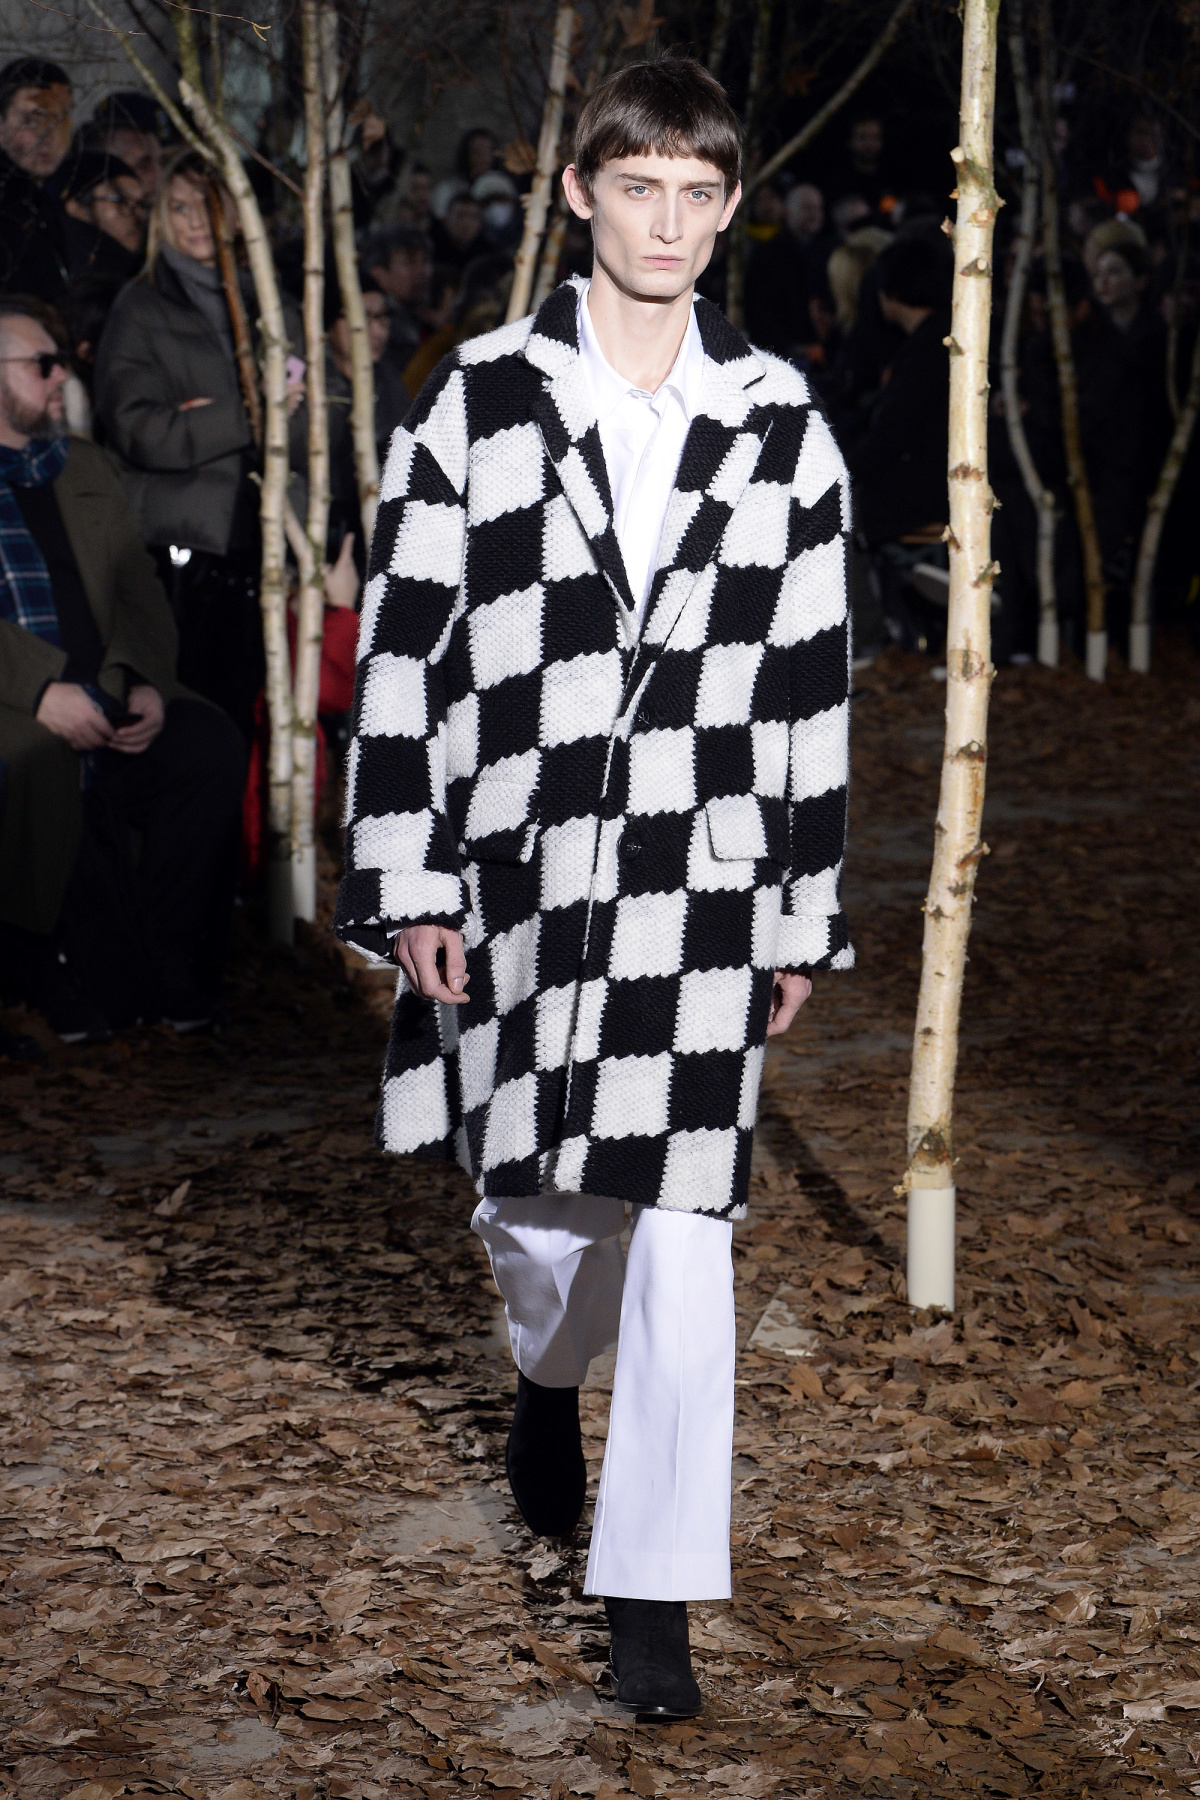 off_white_look_34_2017_aw_mens.jpeg